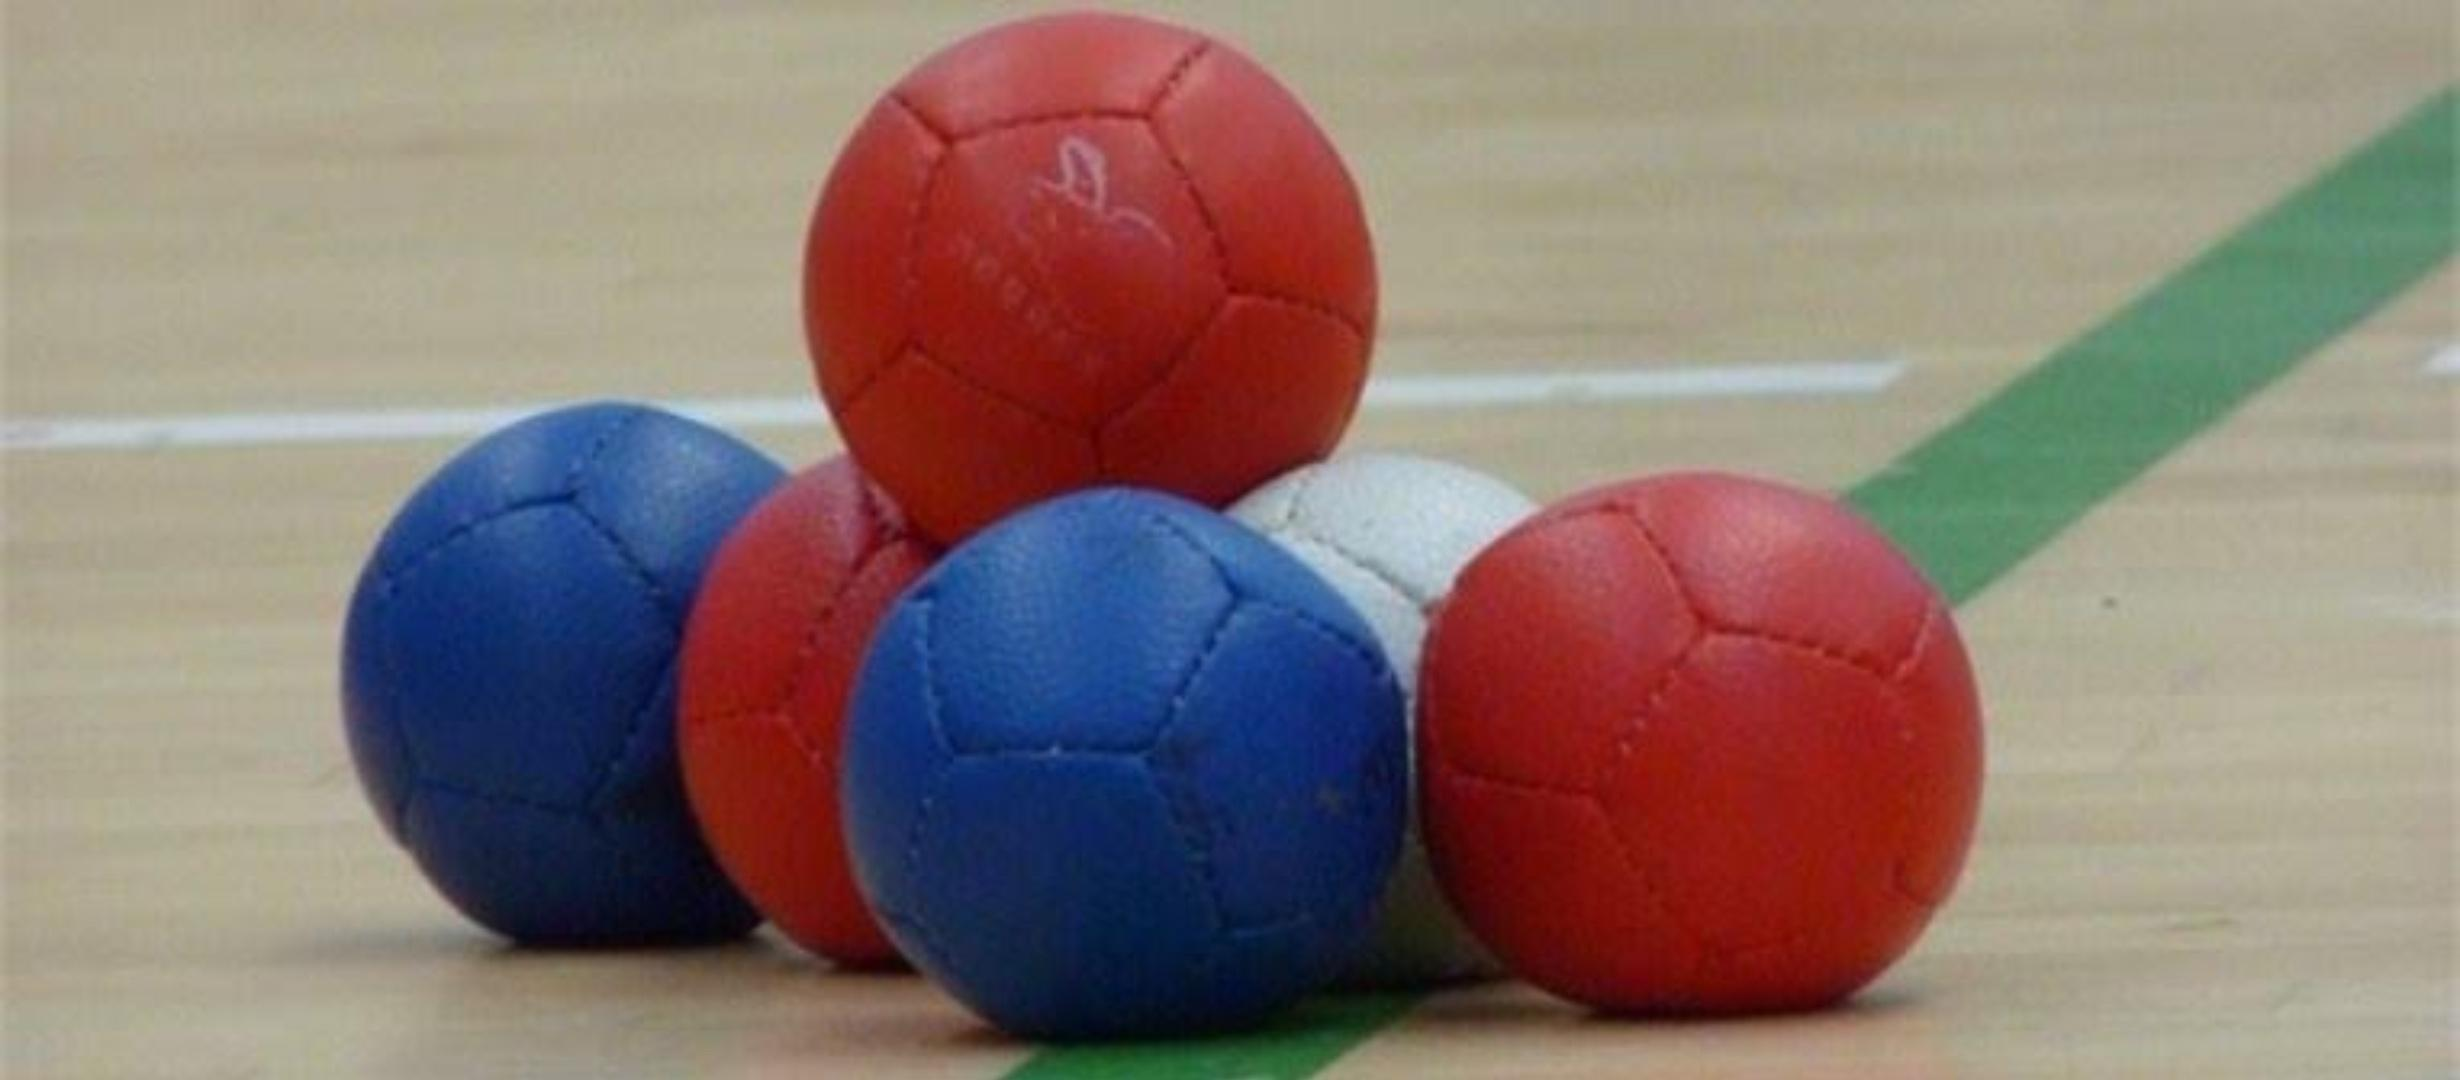 A group of 5 boccia balls, two blue, two red and one white with another red ball balanced on top